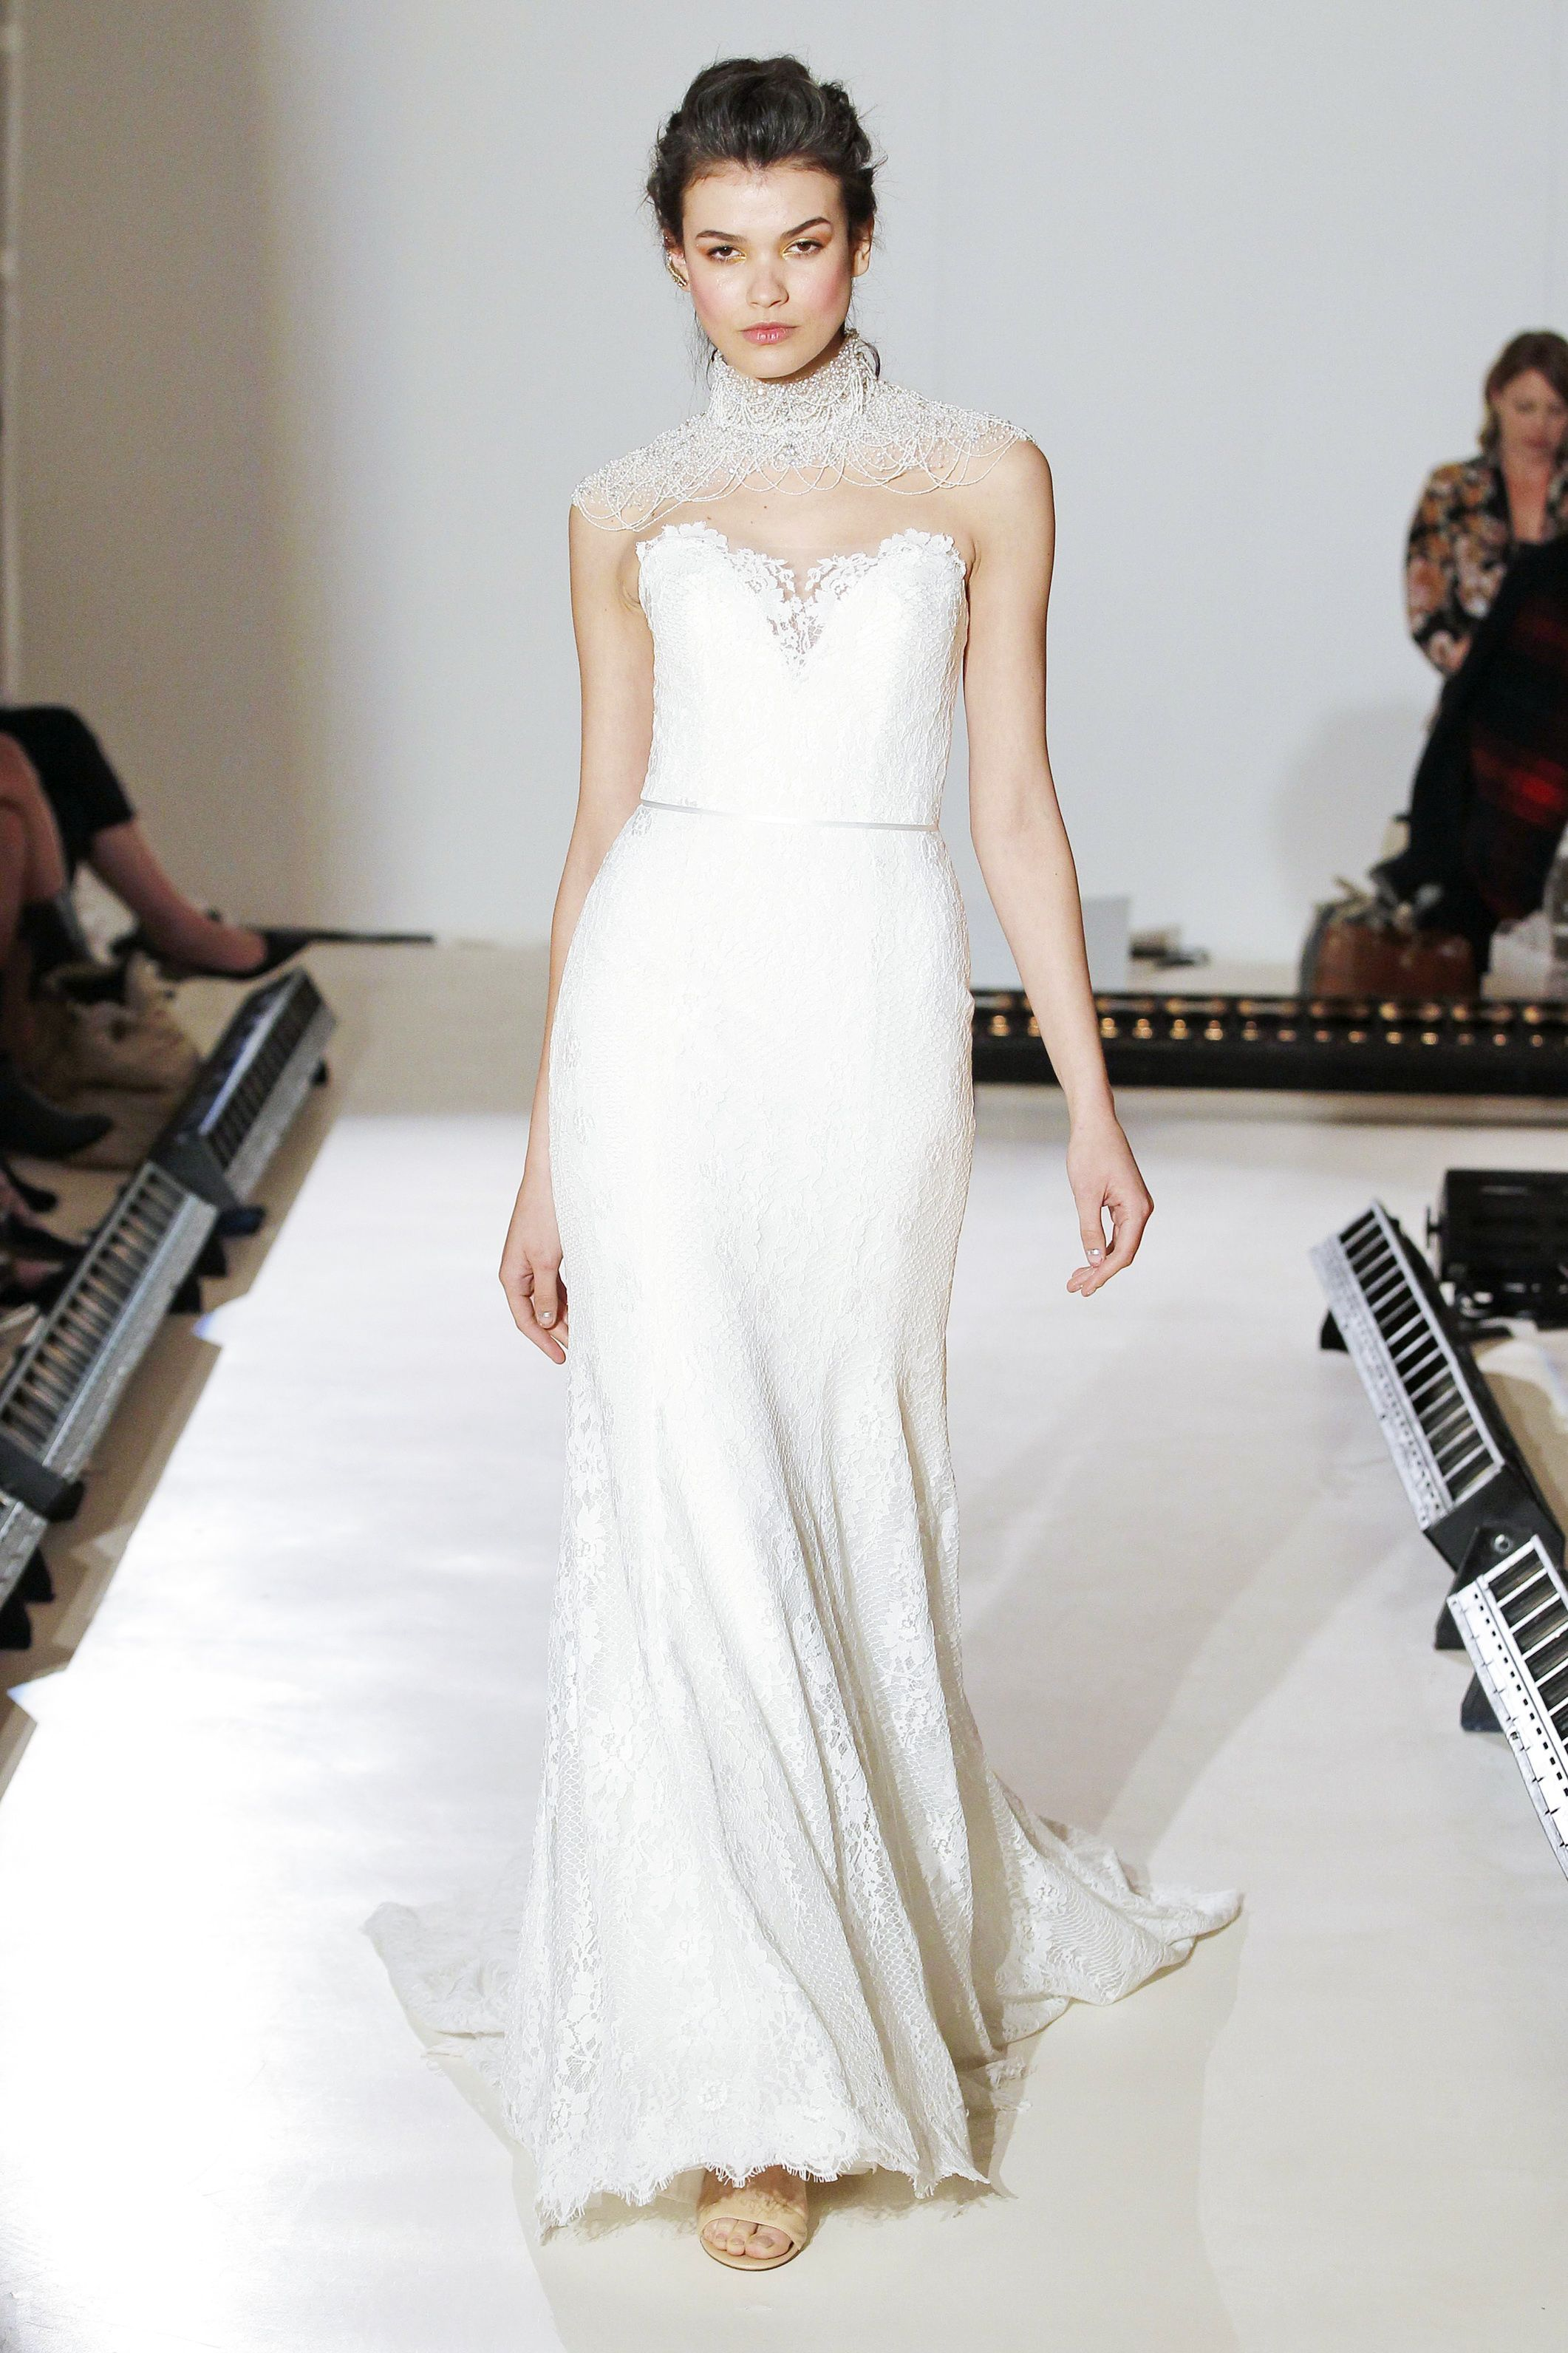 Best wedding dress for size 20  Pin by ASh Jollee on I Do  Pinterest